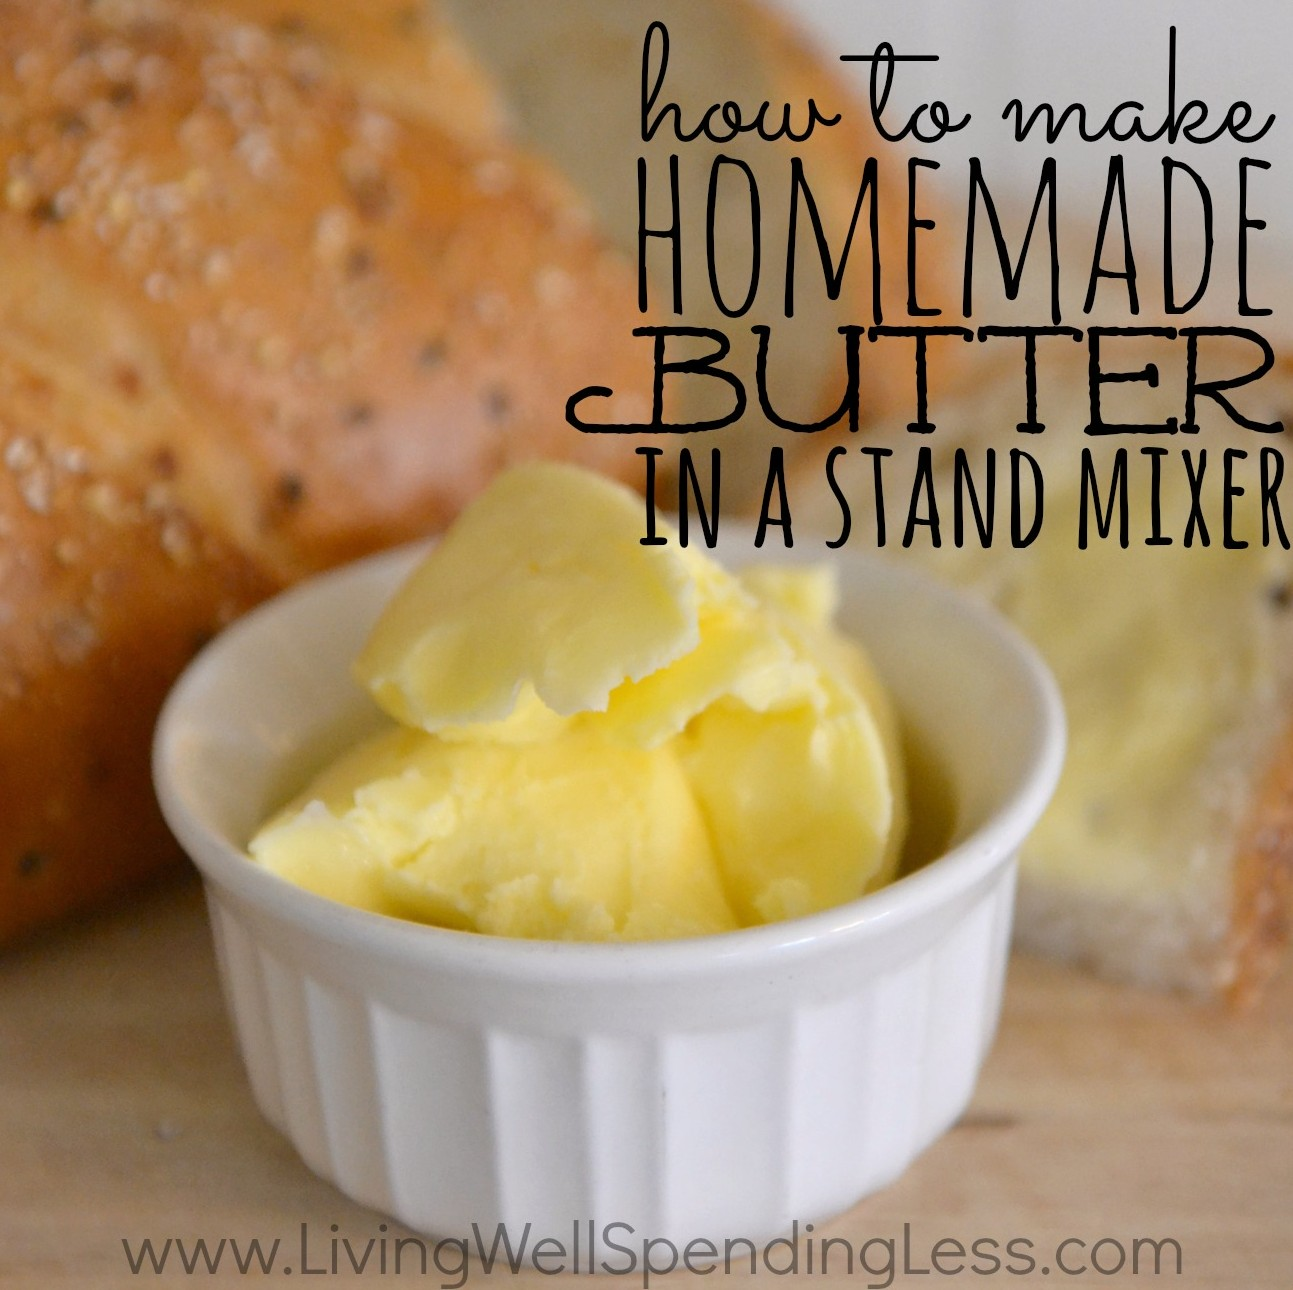 How to make homemade butter in a stand mixer. I seriously cannot ...